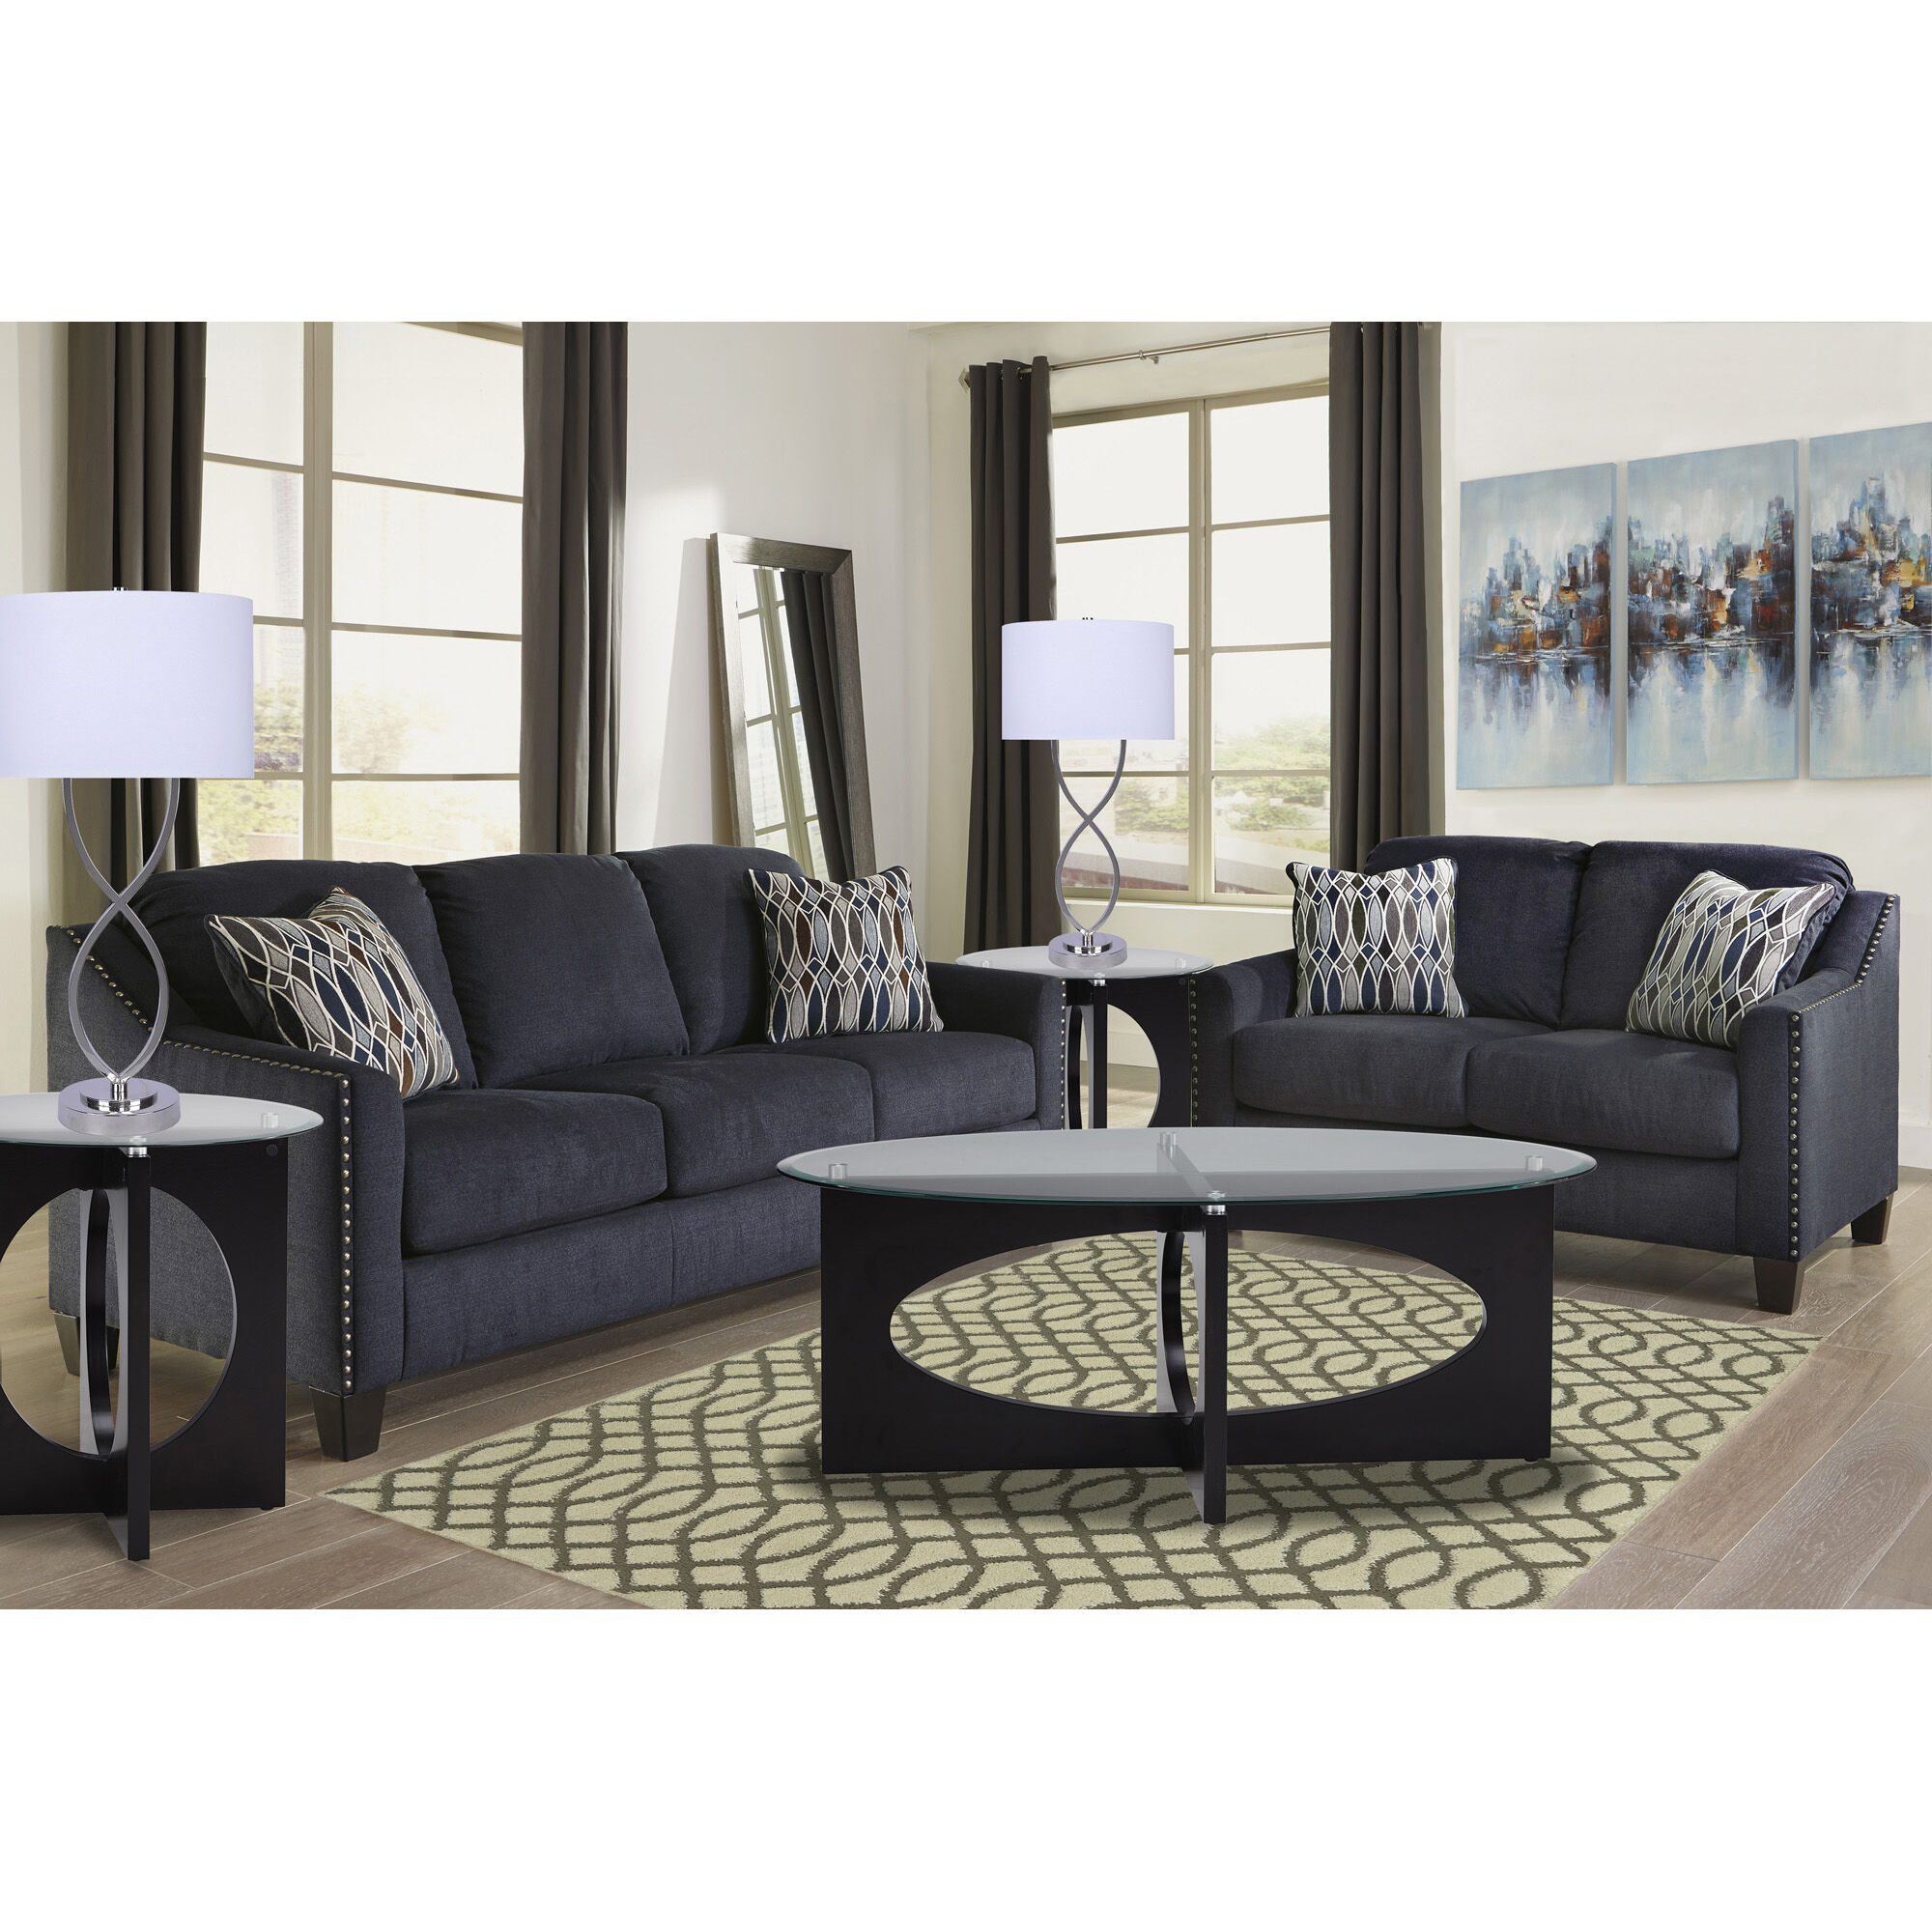 7 Piece Creeal Heights Living Room Collection